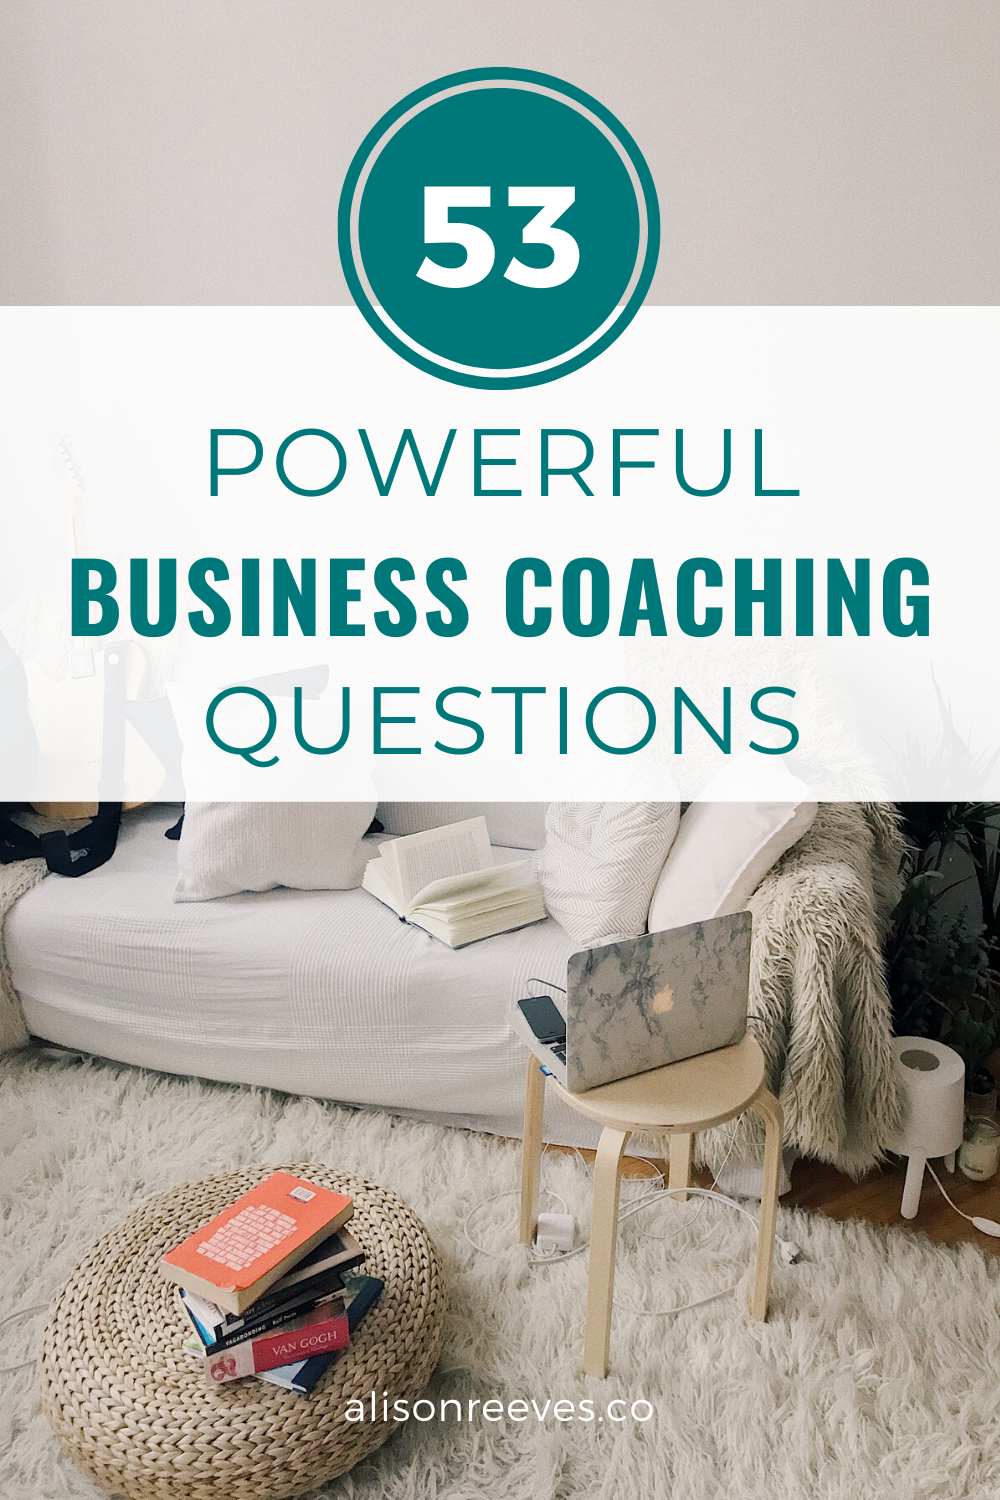 53 Powerful Business Coaching Questions | Alison Reeves Coaching Tips